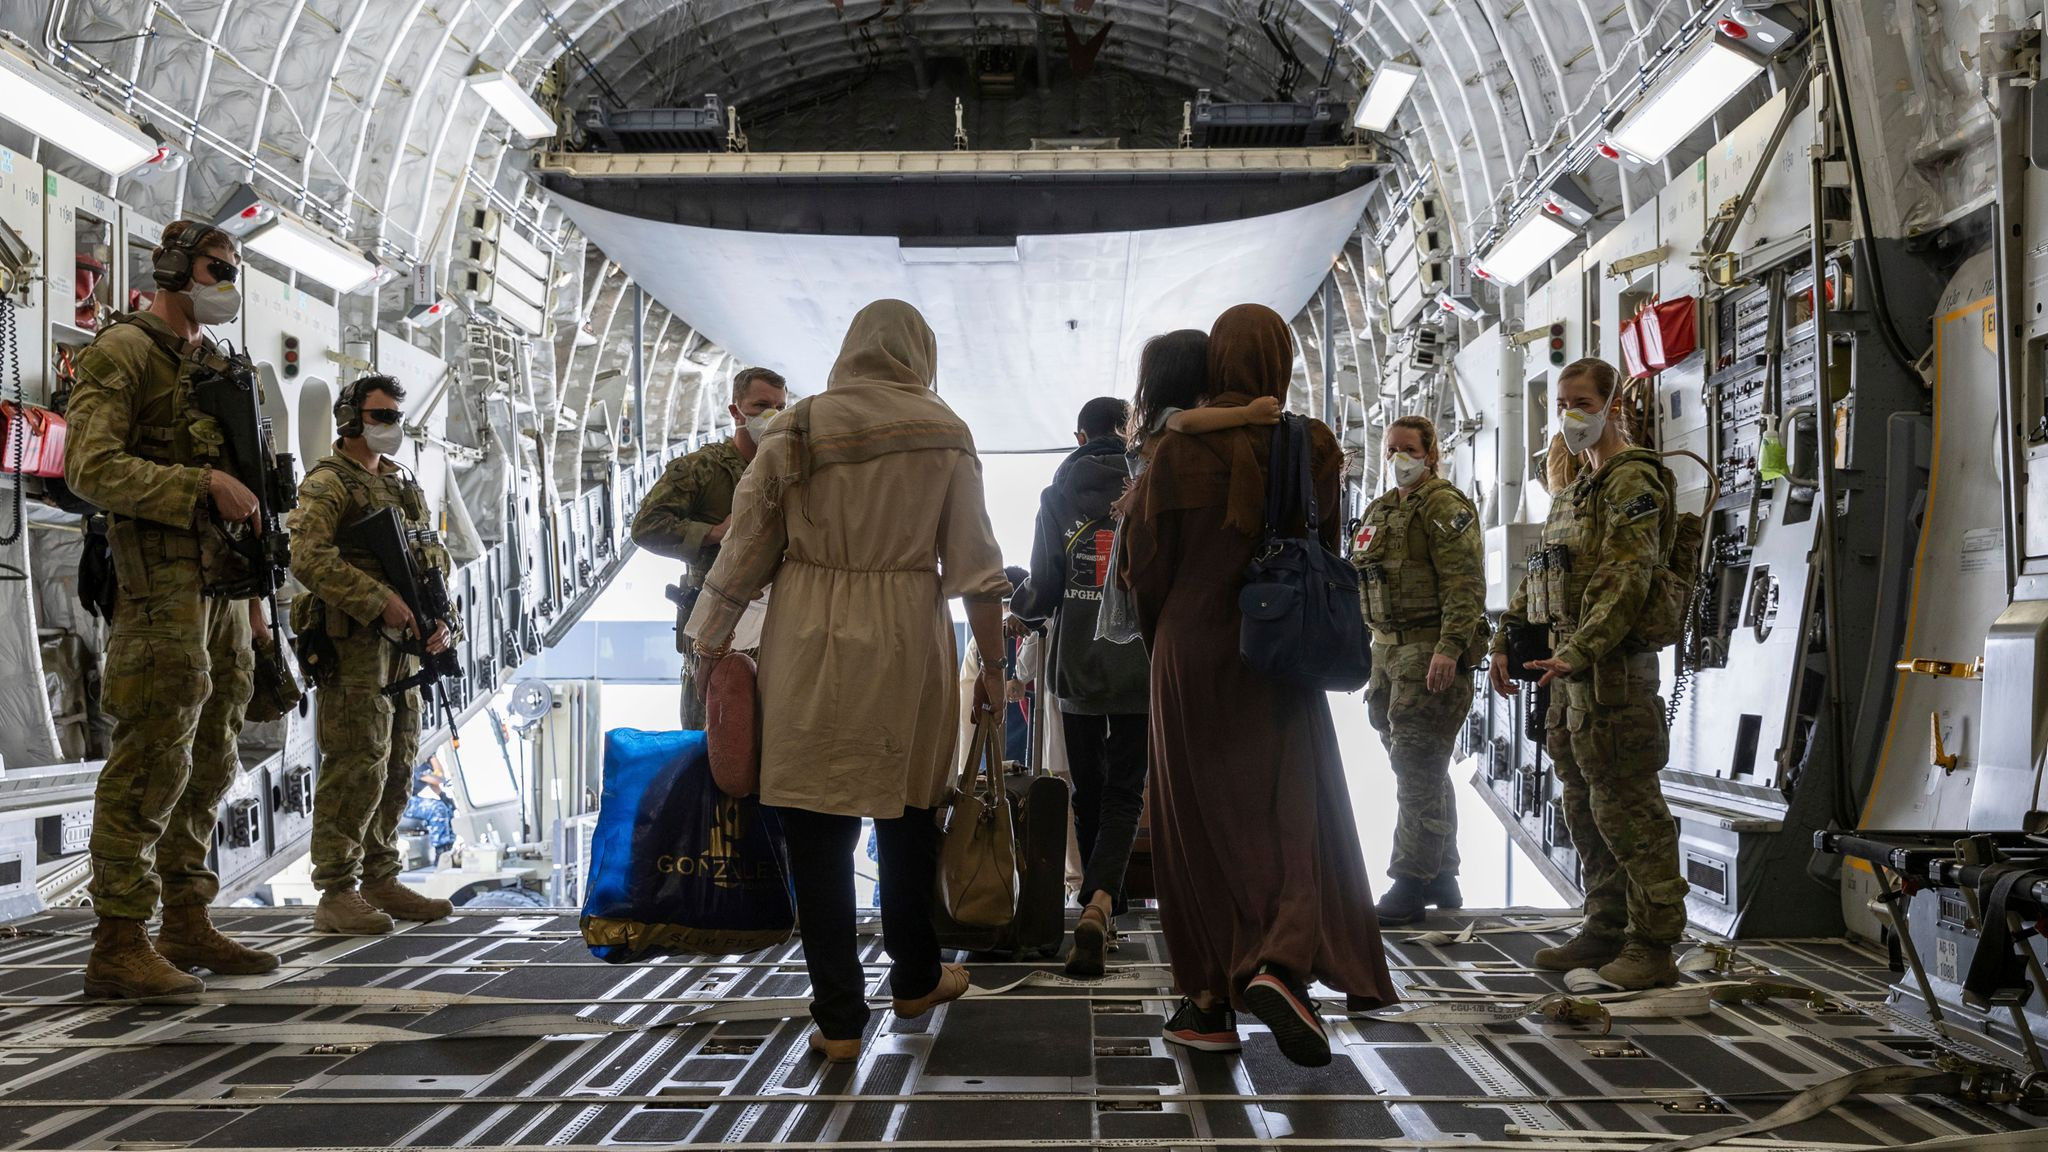 100 Afghanistan footballers and families evacuated by Australia out of Taliban control